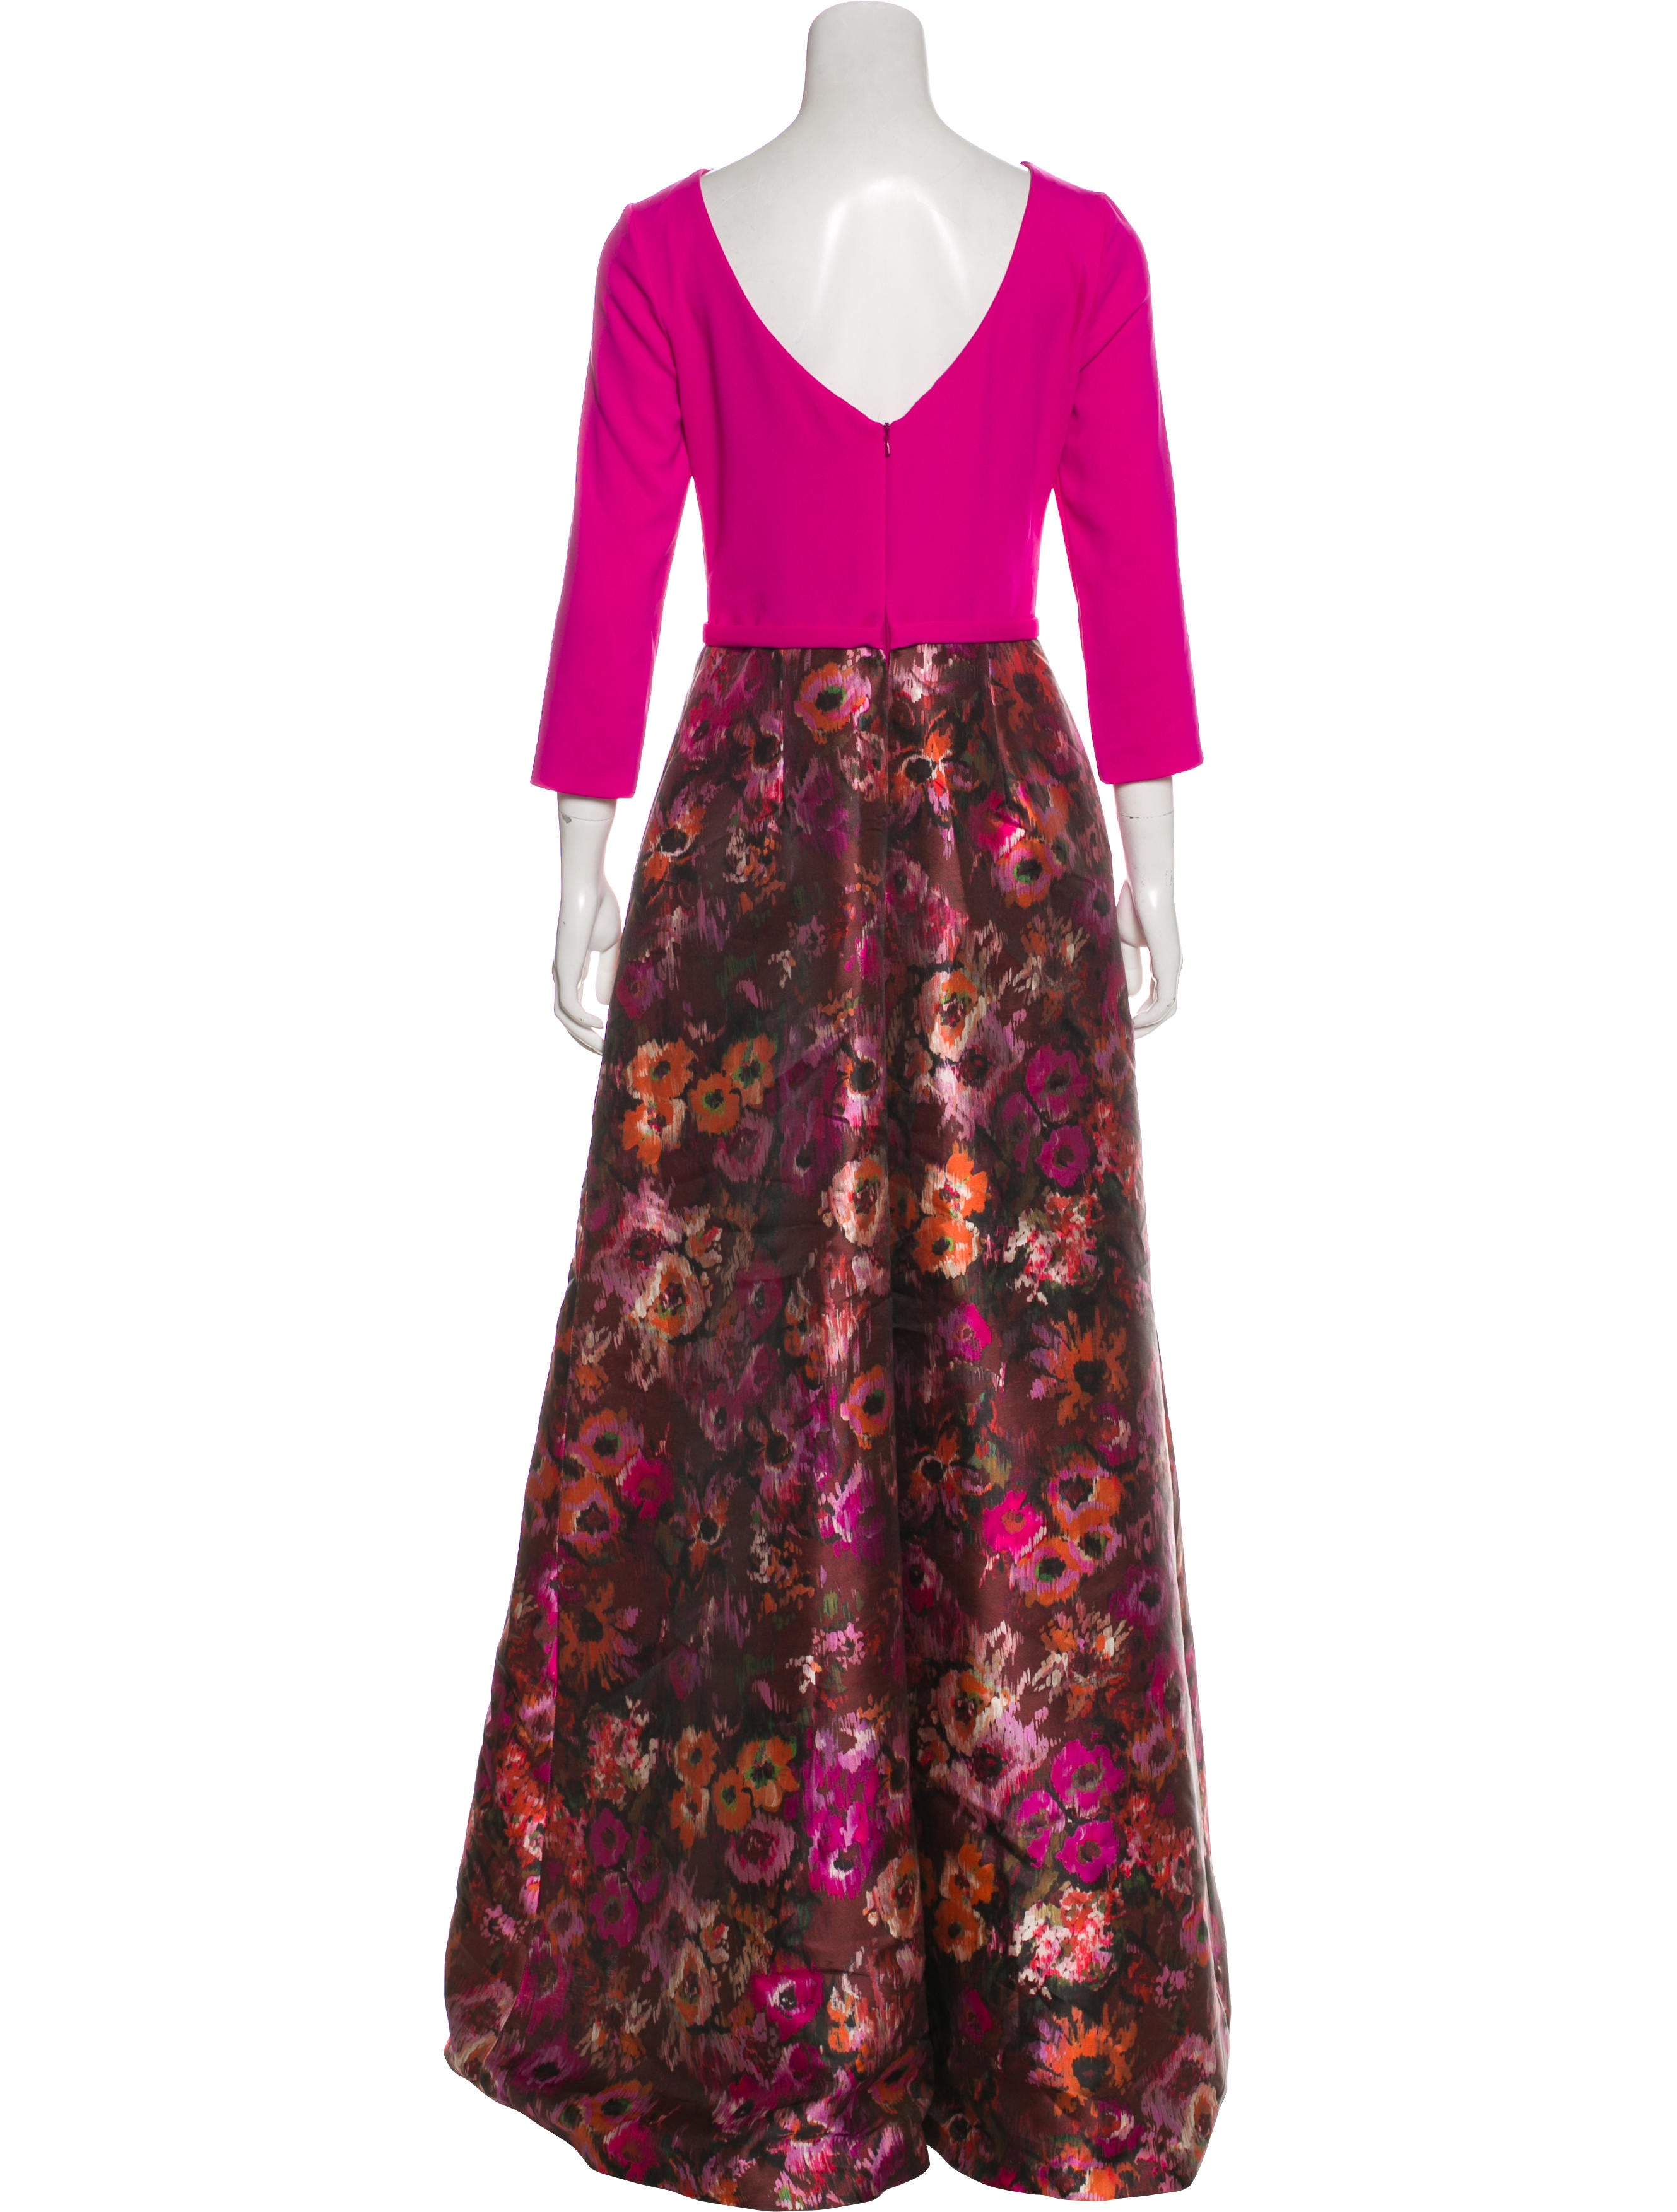 Theia Floral Print Evening Dress w/ Tags - Clothing - WTT20604 | The ...